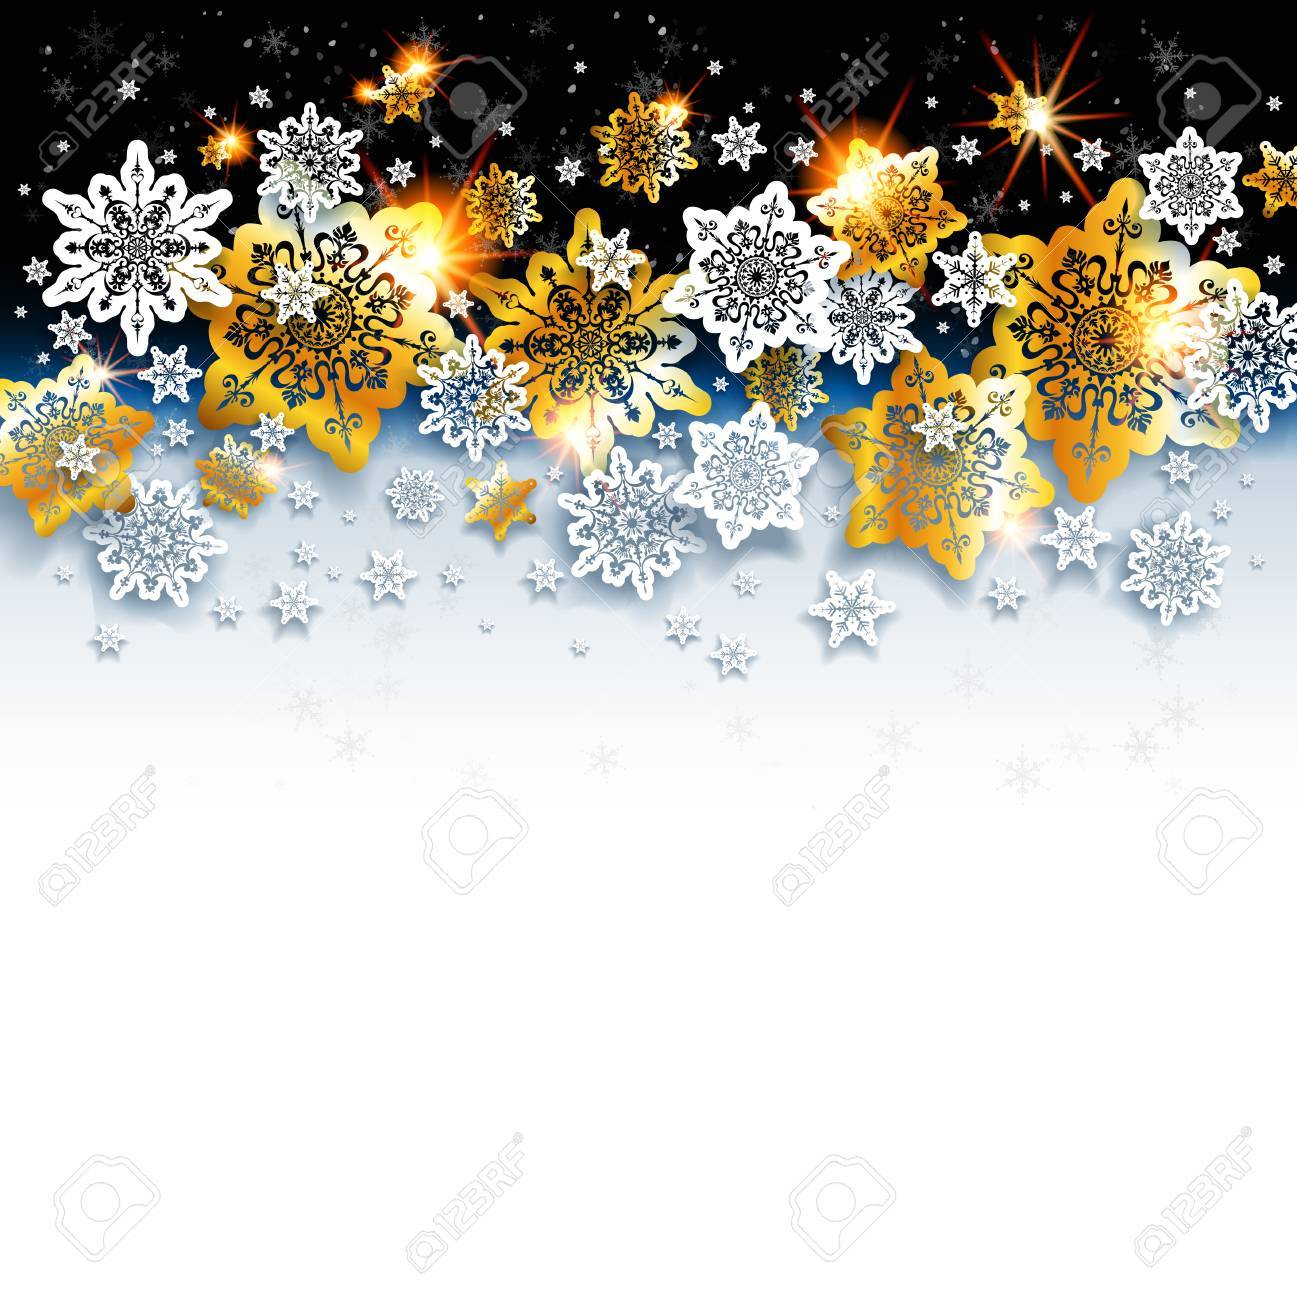 Abstract Winter Background With Shine Snowflakes Luxury Christmas